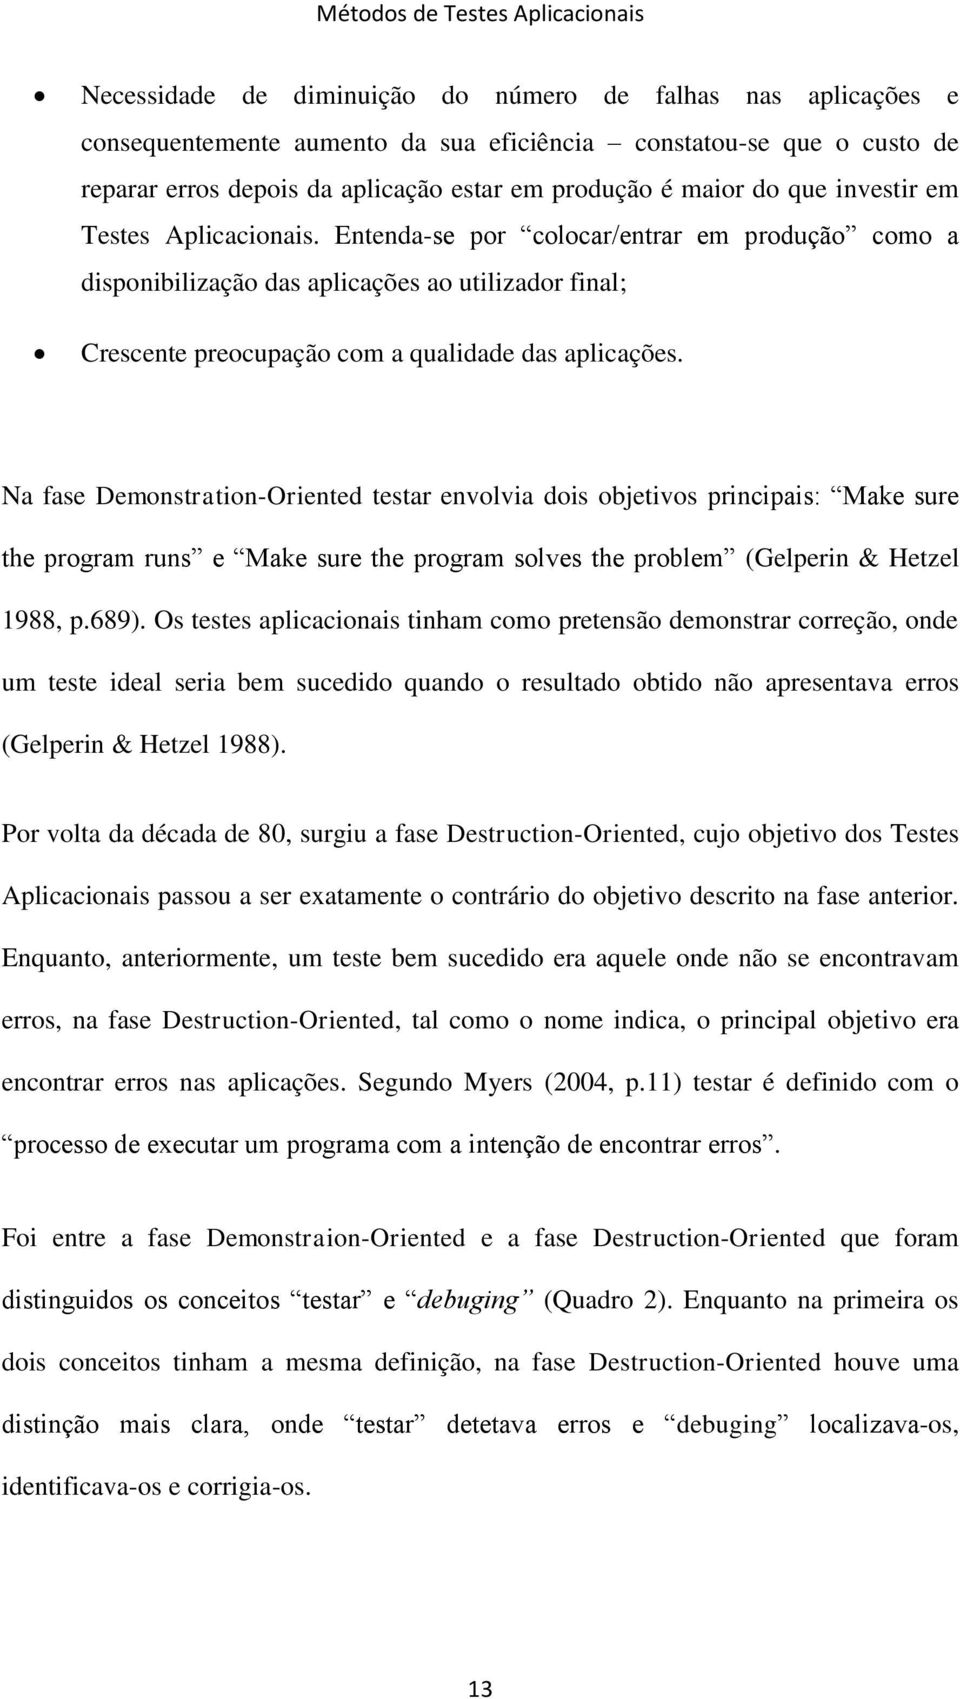 Na fase Demonstration-Oriented testar envolvia dois objetivos principais: Make sure the program runs e Make sure the program solves the problem (Gelperin & Hetzel 1988, p.689).